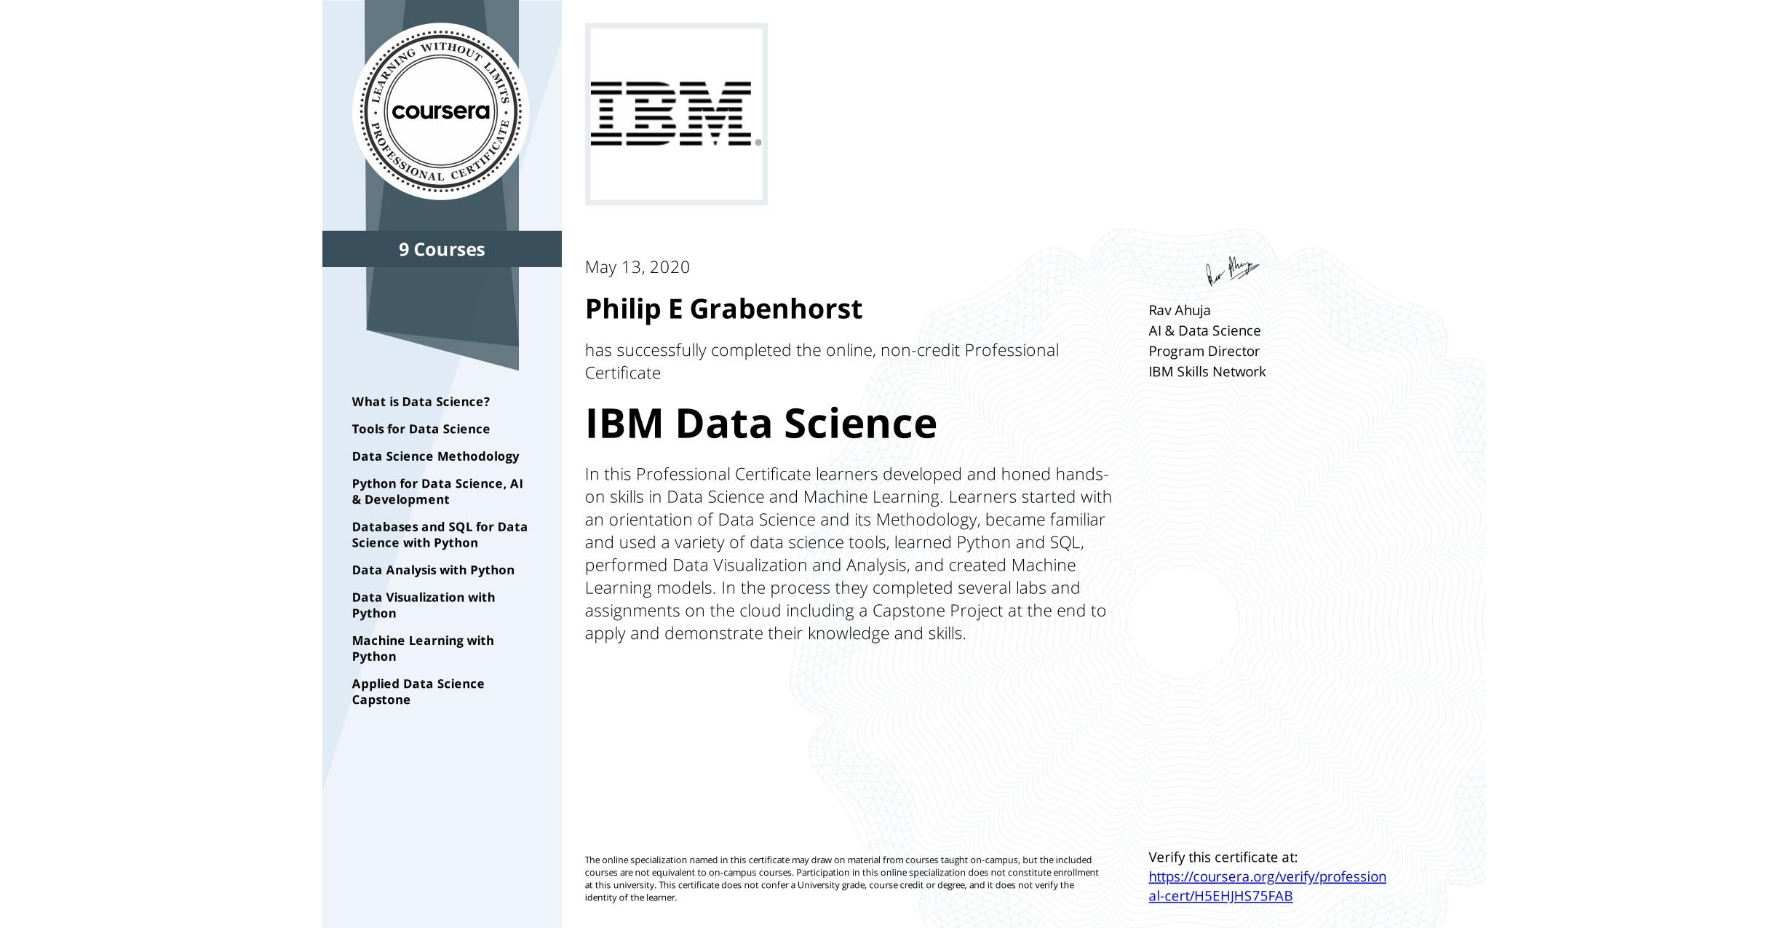 View certificate for Philip E Grabenhorst, IBM Data Science, offered through Coursera. In this Professional Certificate learners developed and honed hands-on skills in Data Science and Machine Learning. Learners started with an orientation of Data Science and its Methodology, became familiar and used a variety of data science tools, learned Python and SQL, performed Data Visualization and Analysis, and created Machine Learning models.  In the process they completed several labs and assignments on the cloud including a Capstone Project at the end to apply and demonstrate their knowledge and skills.